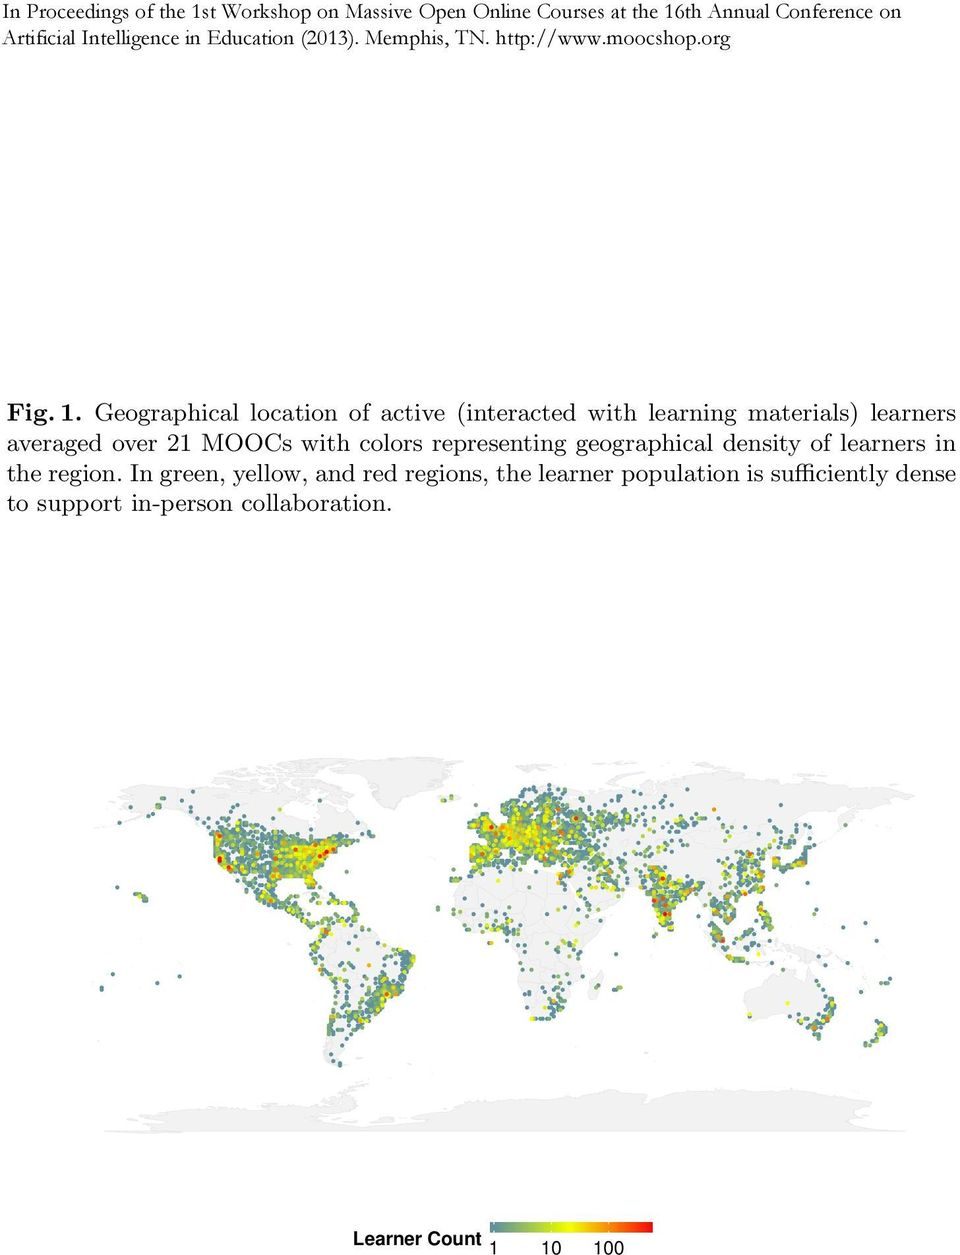 averaged over 21 MOOCs with colors representing geographical density of